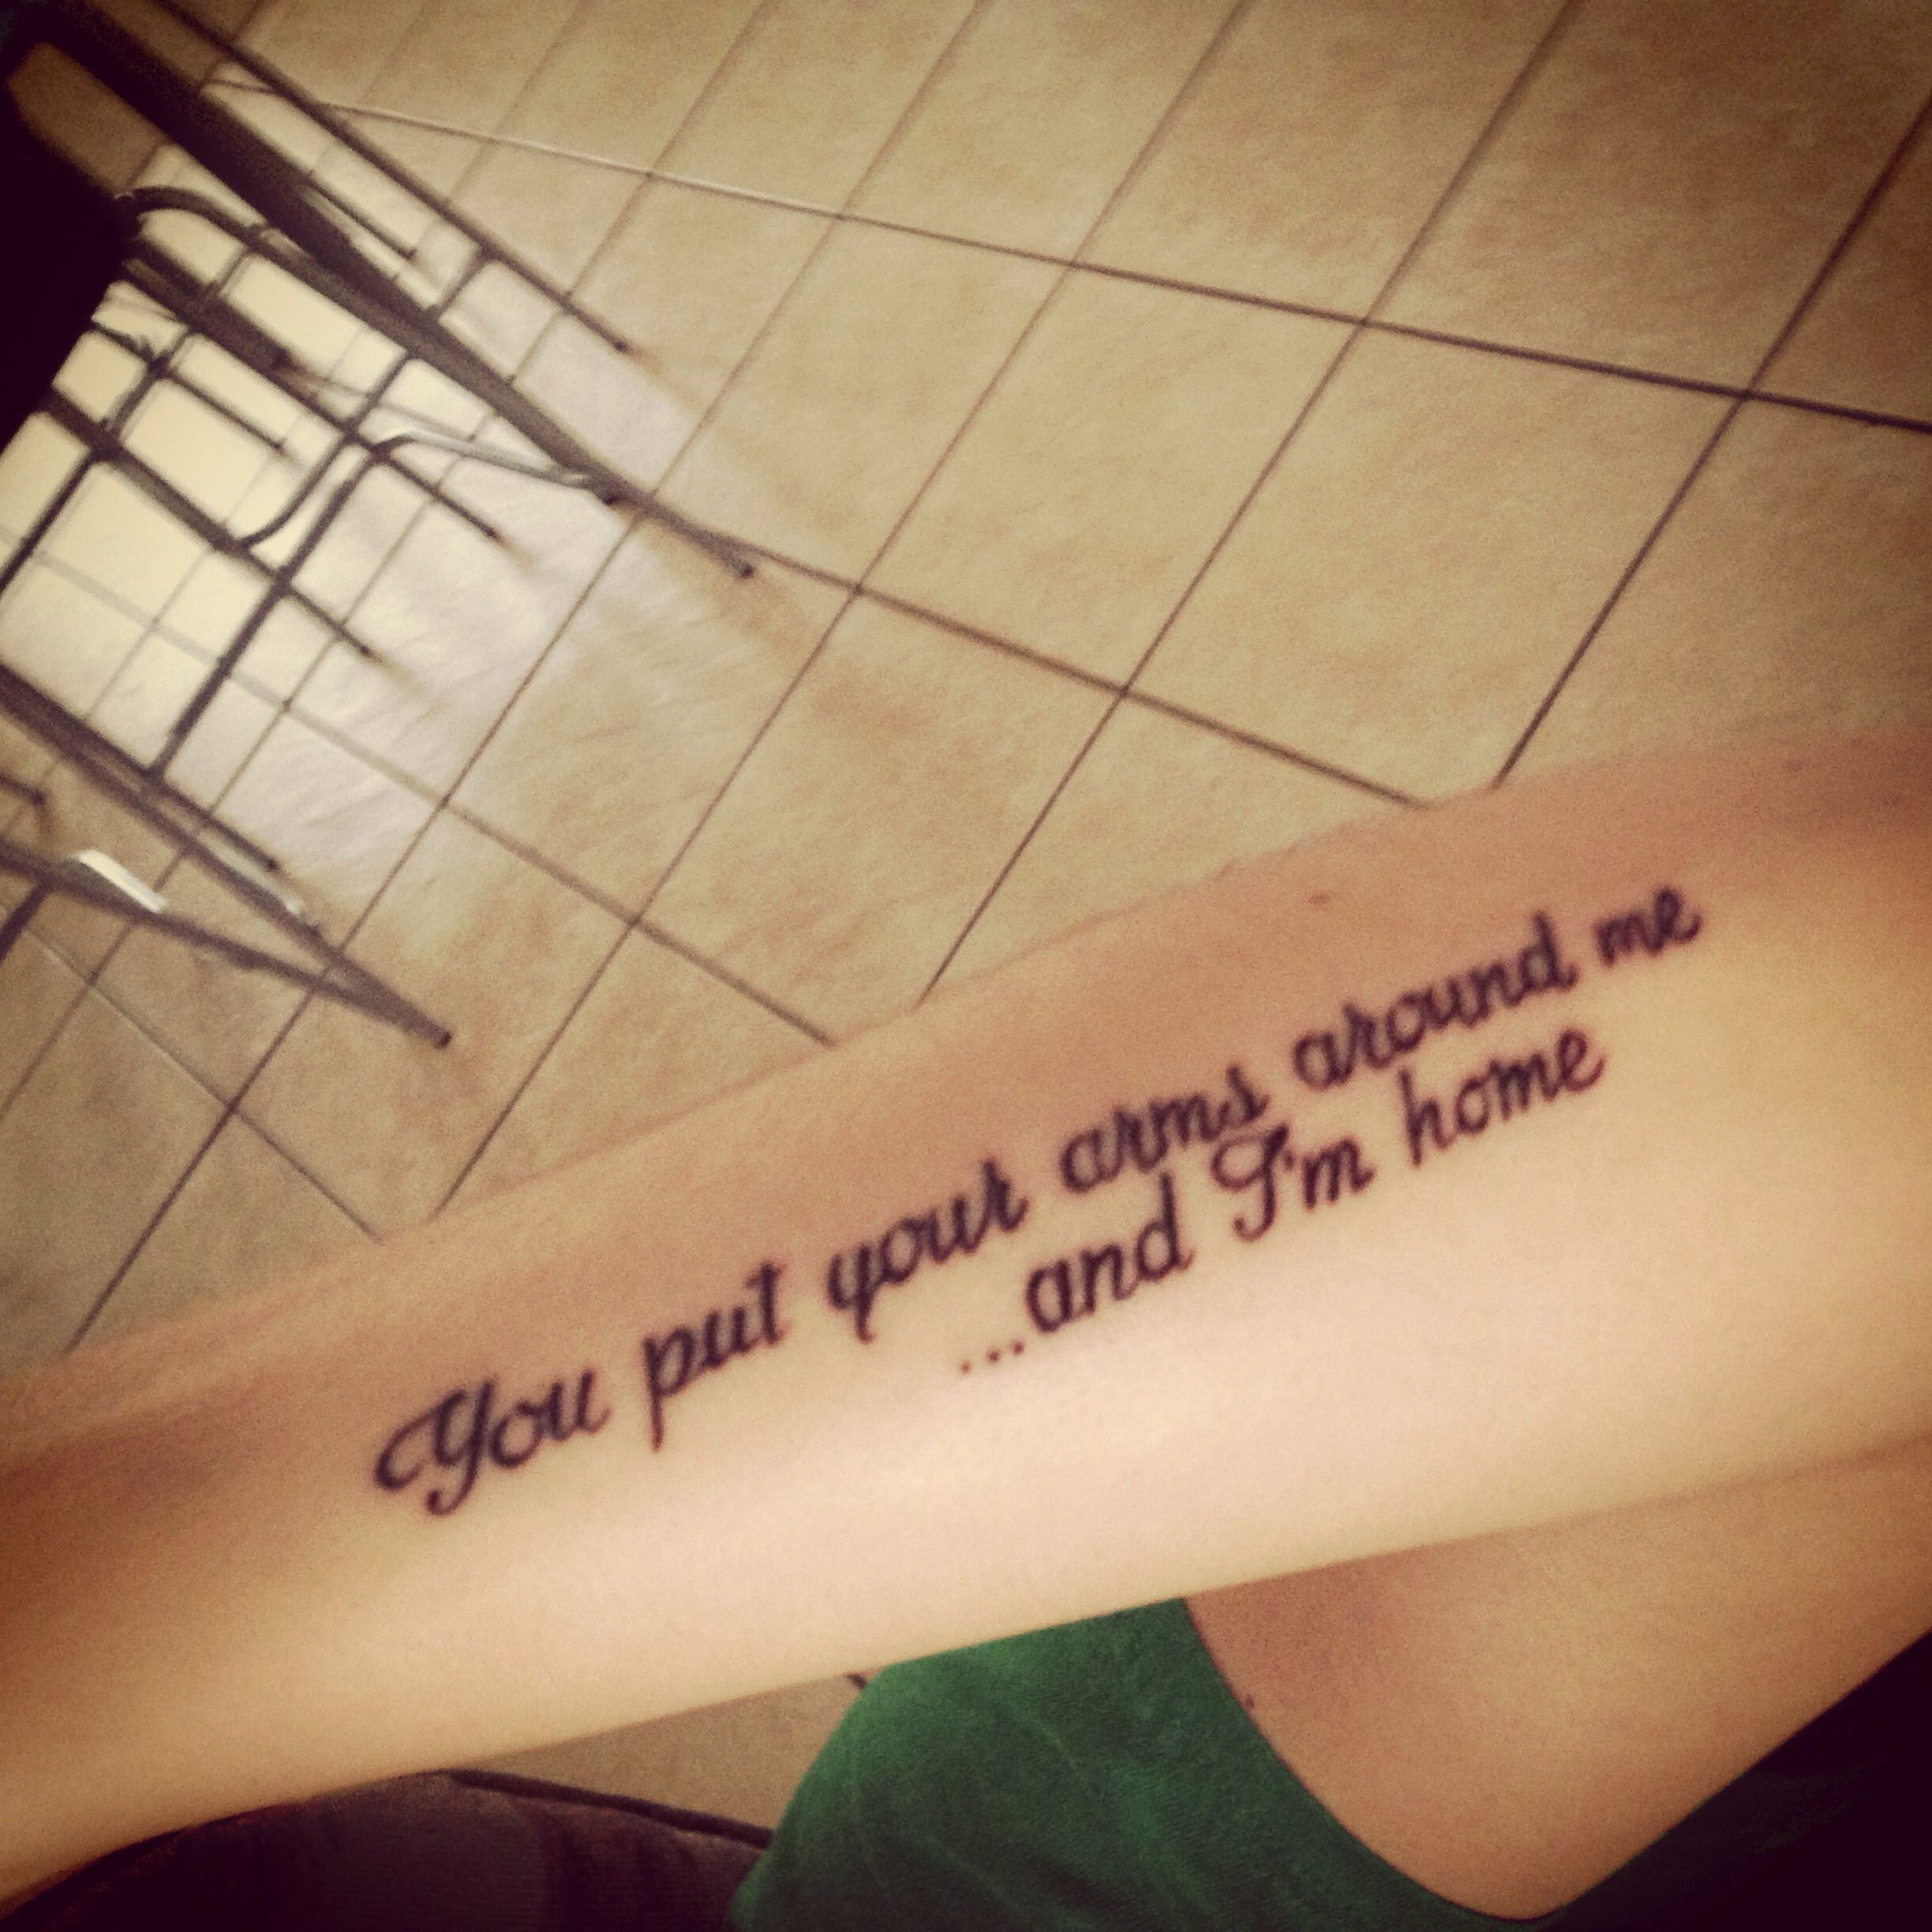 Quote tattoo from Christina Perri's song Arms | Tatuering